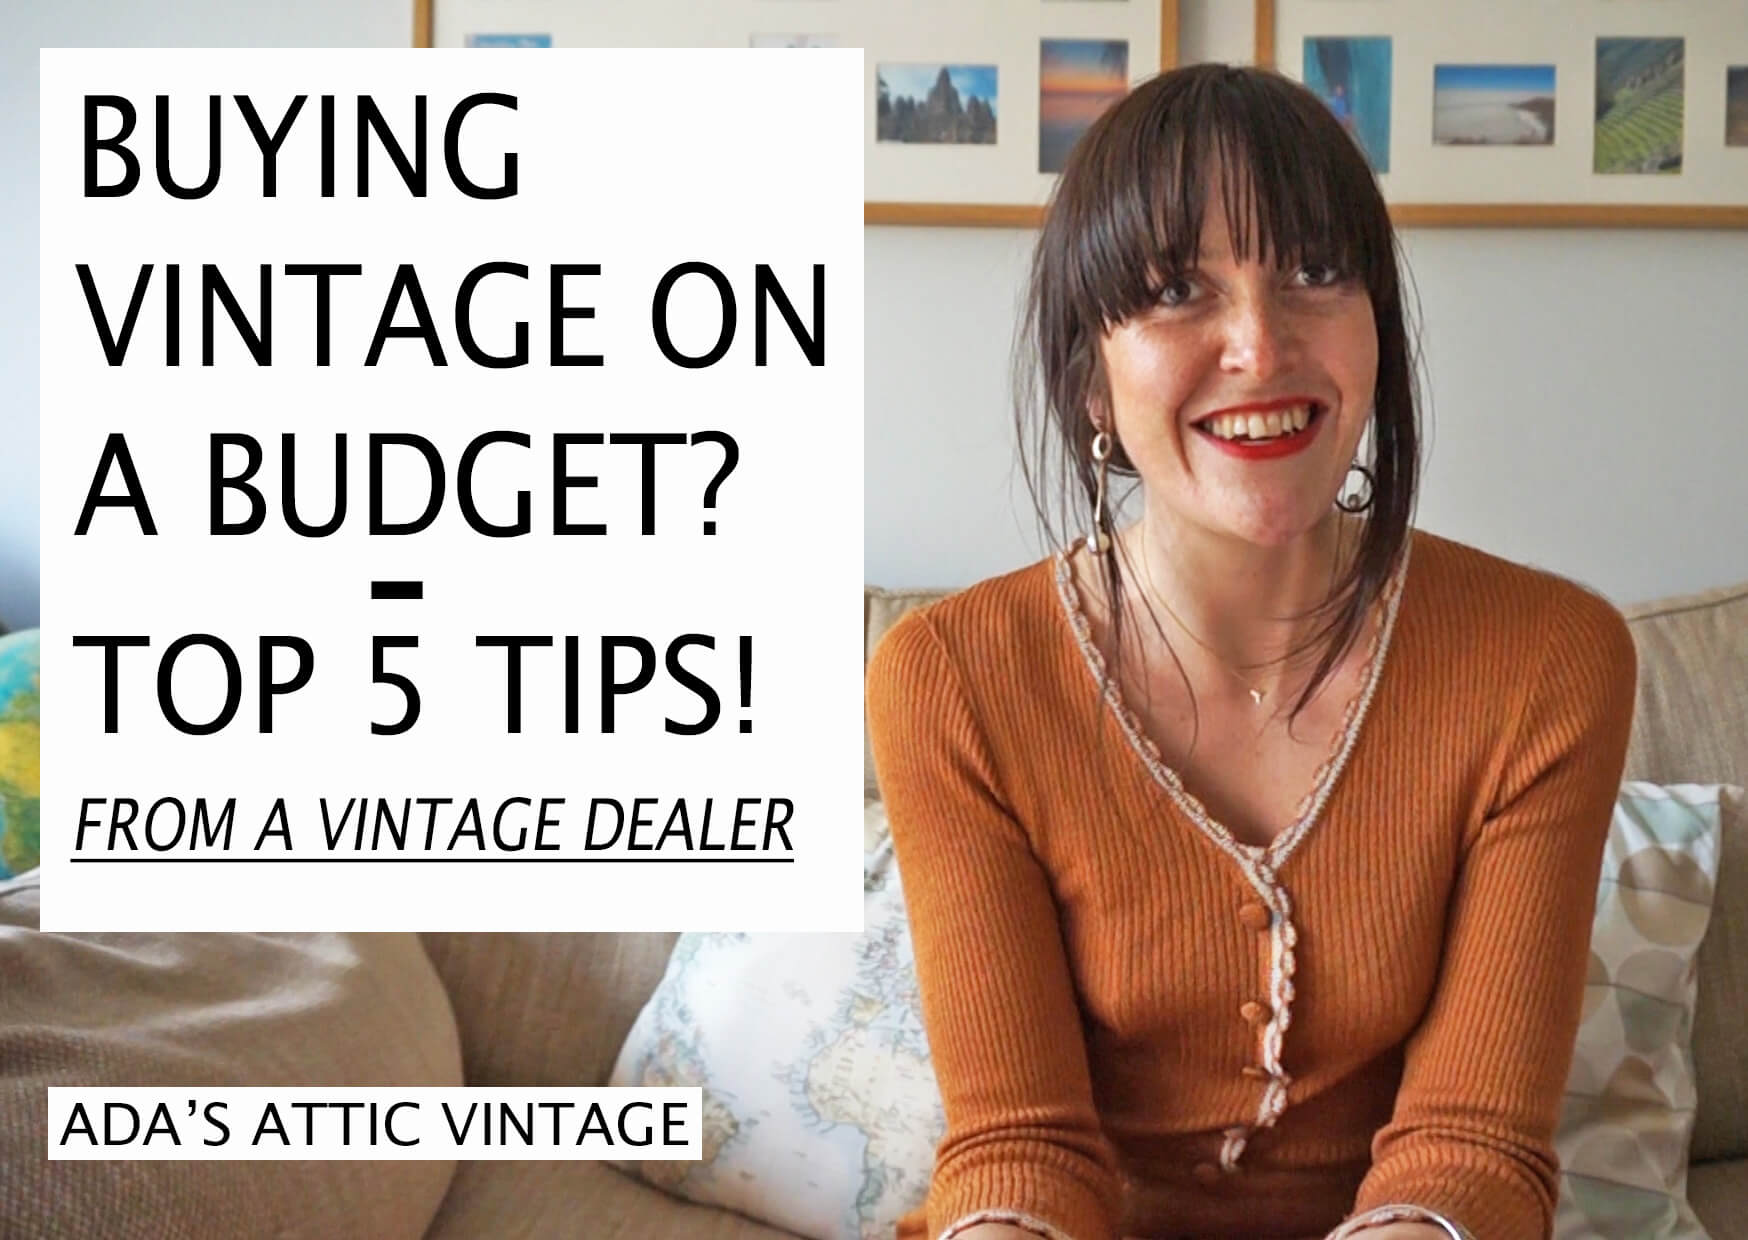 Buying Vintage On A Budget - Top 5 Tips.